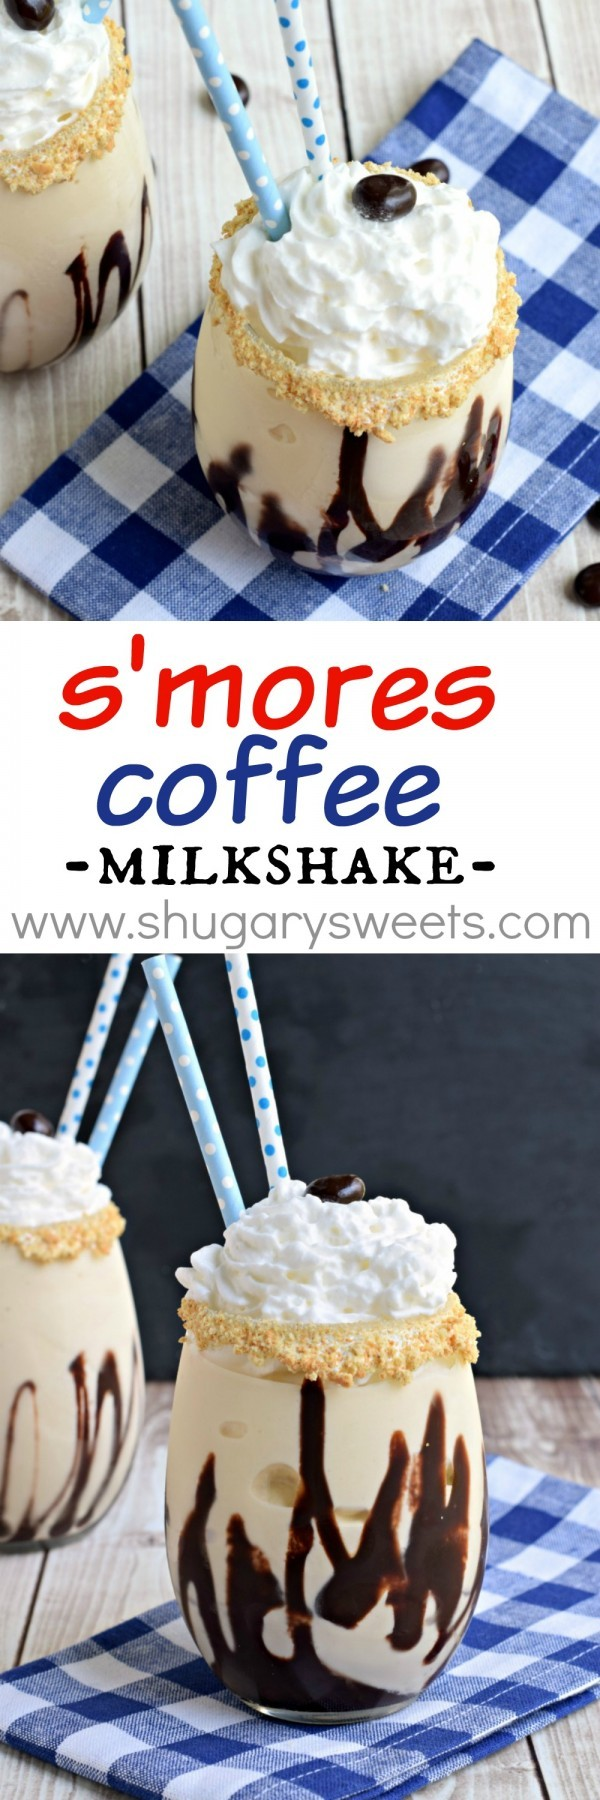 S'mores Coffee Milkshake: made with vanilla ice cream, brewed coffee, marshmallow and grahams. This is one afternoon pick-me-up you must try!